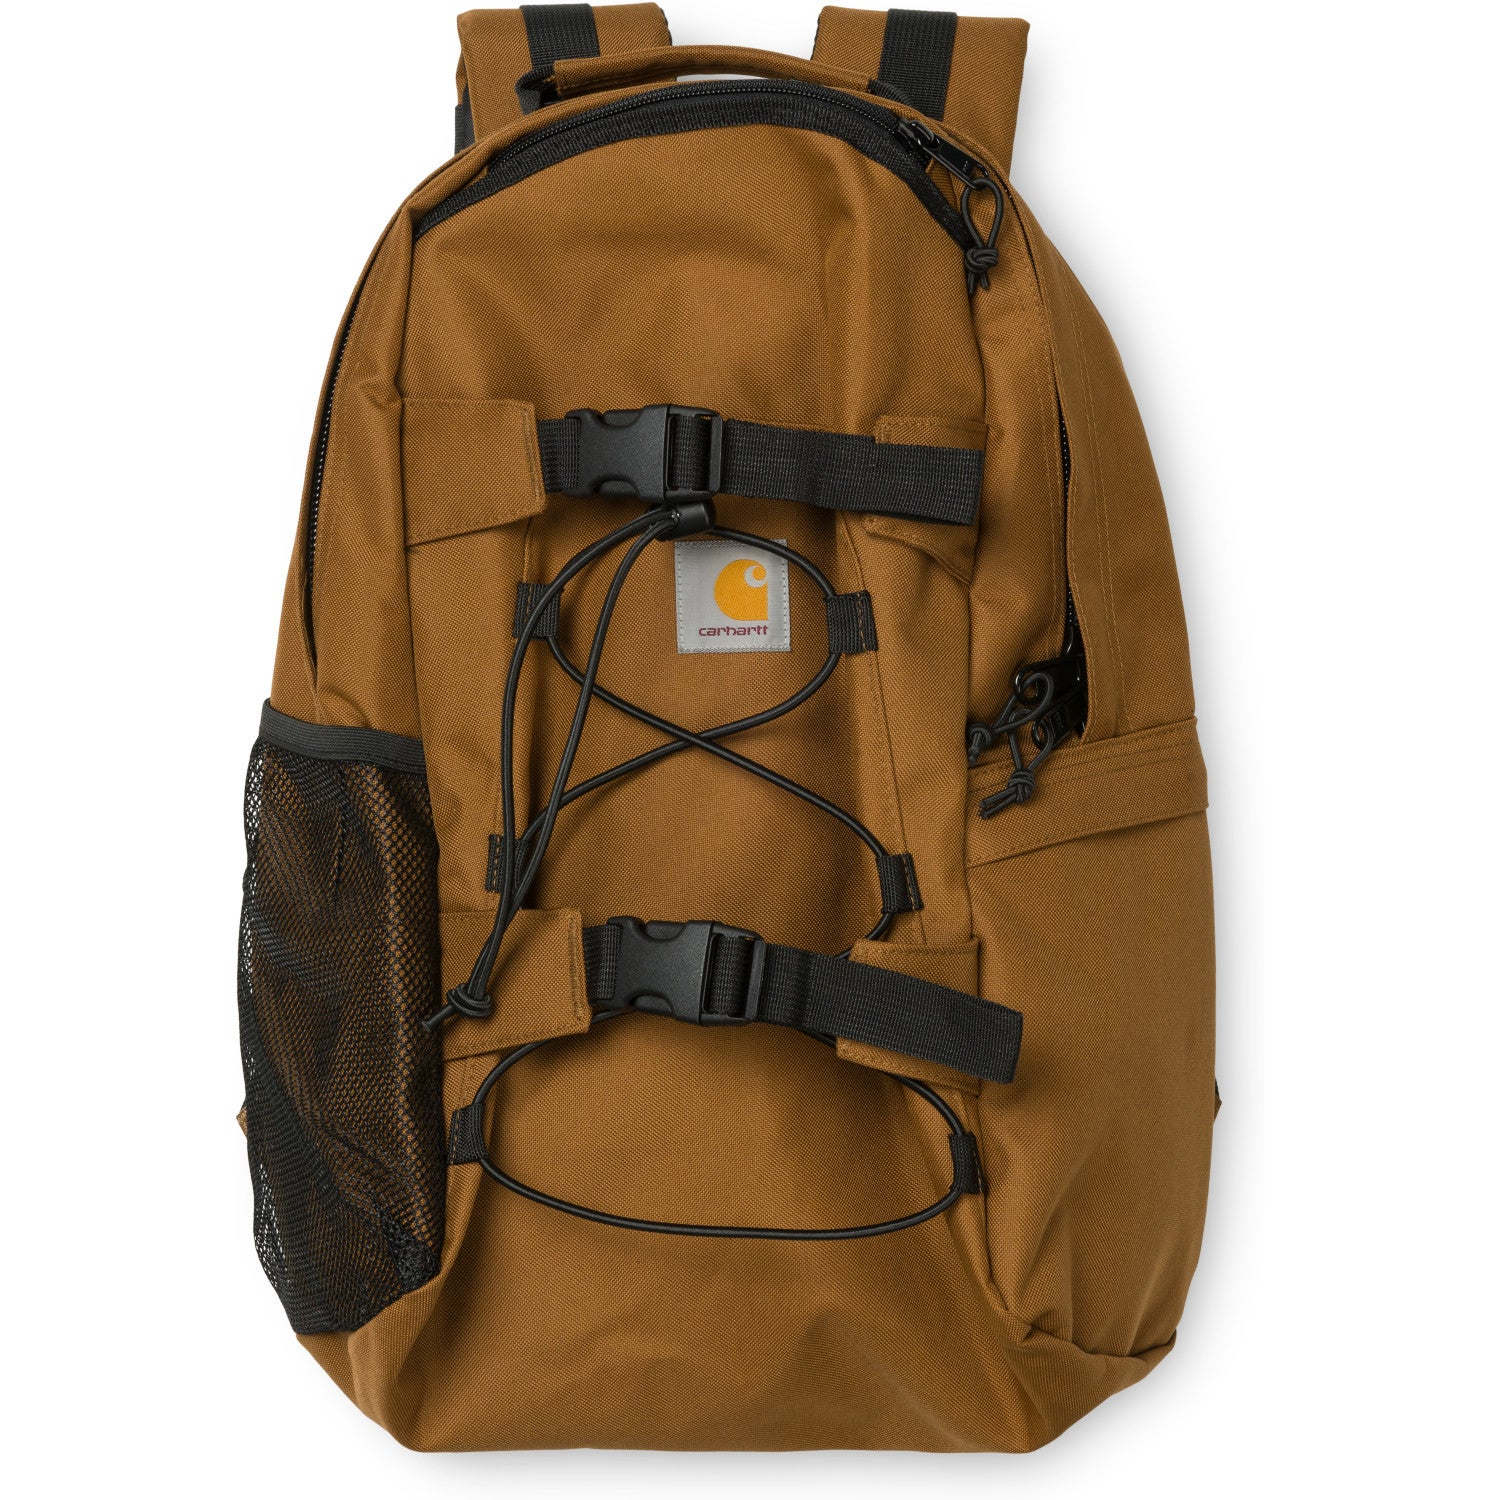 Carhartt Kickflip Backpack available from Blackleaf